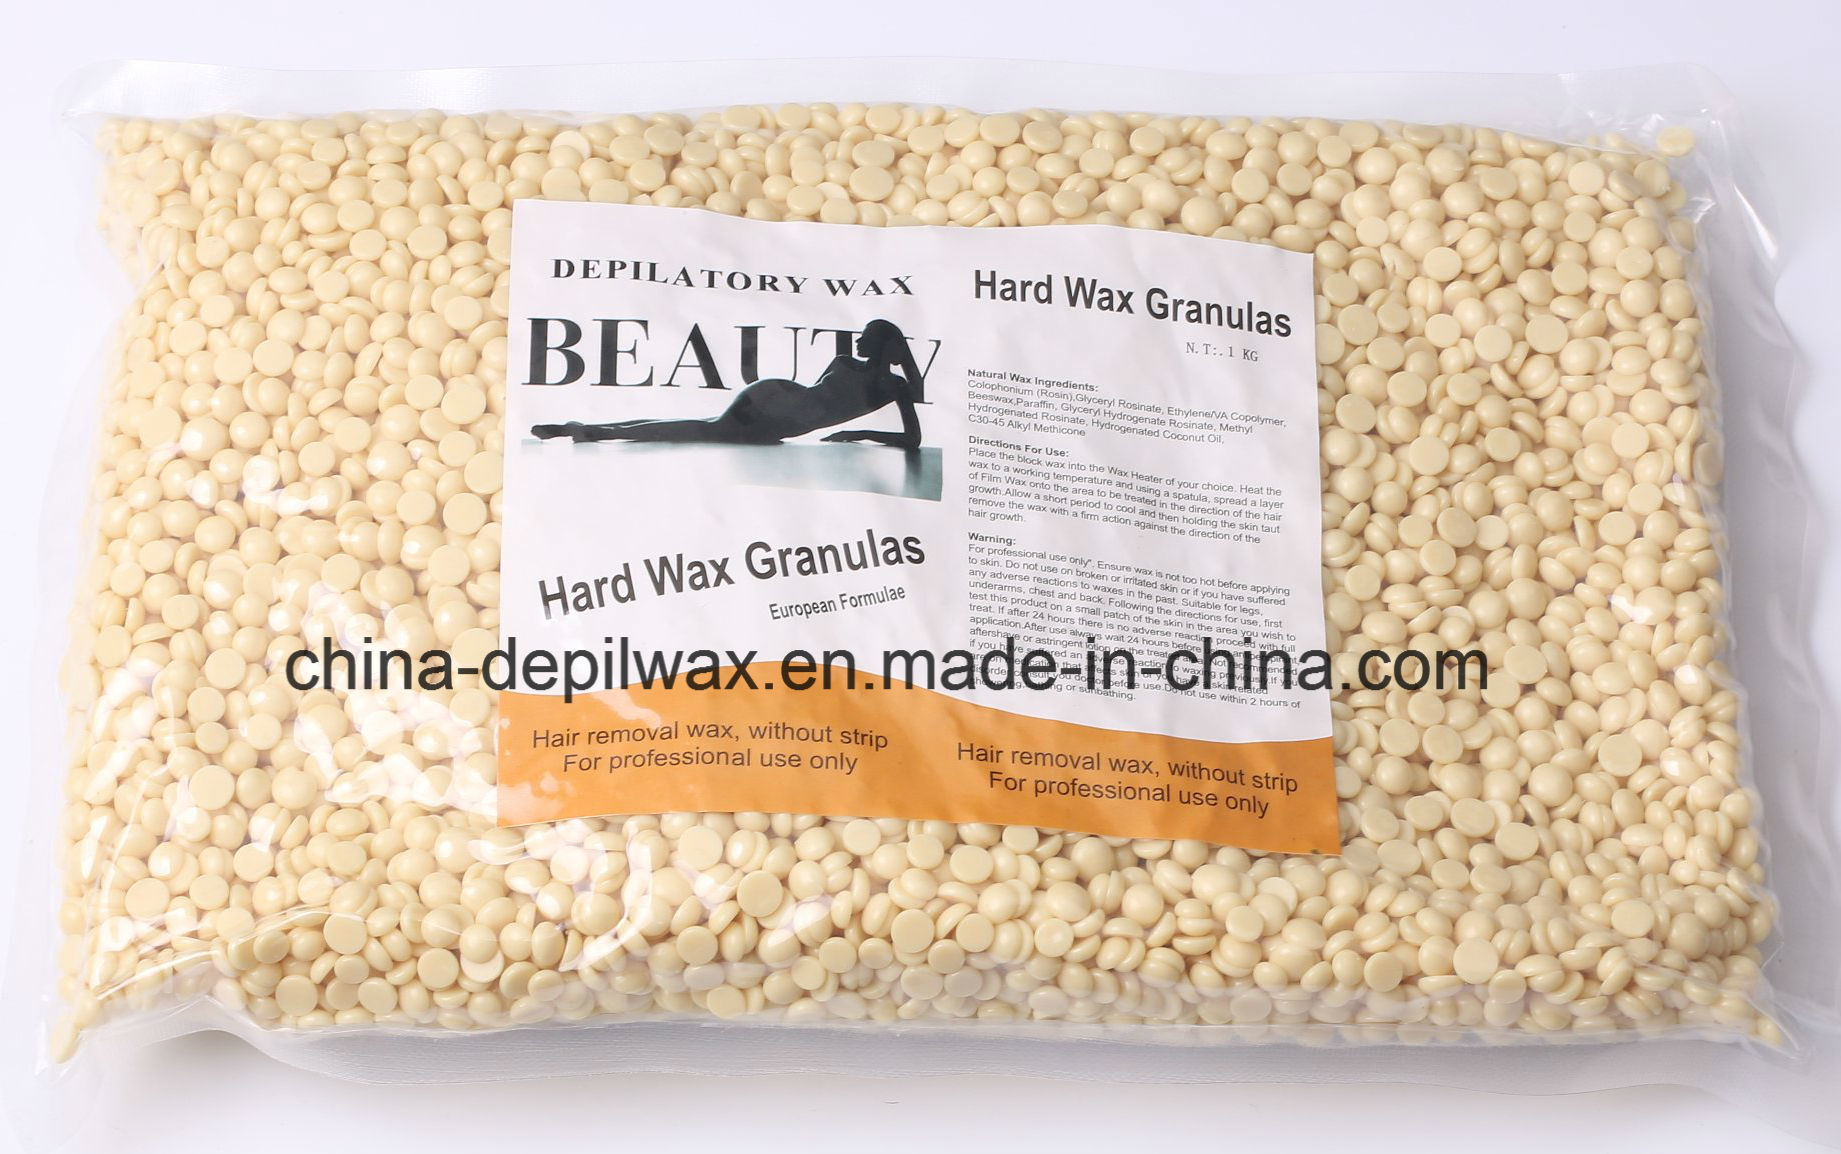 Red Hot Film Hard Wax Pellets Depilatory Wax for Stripless Waxing